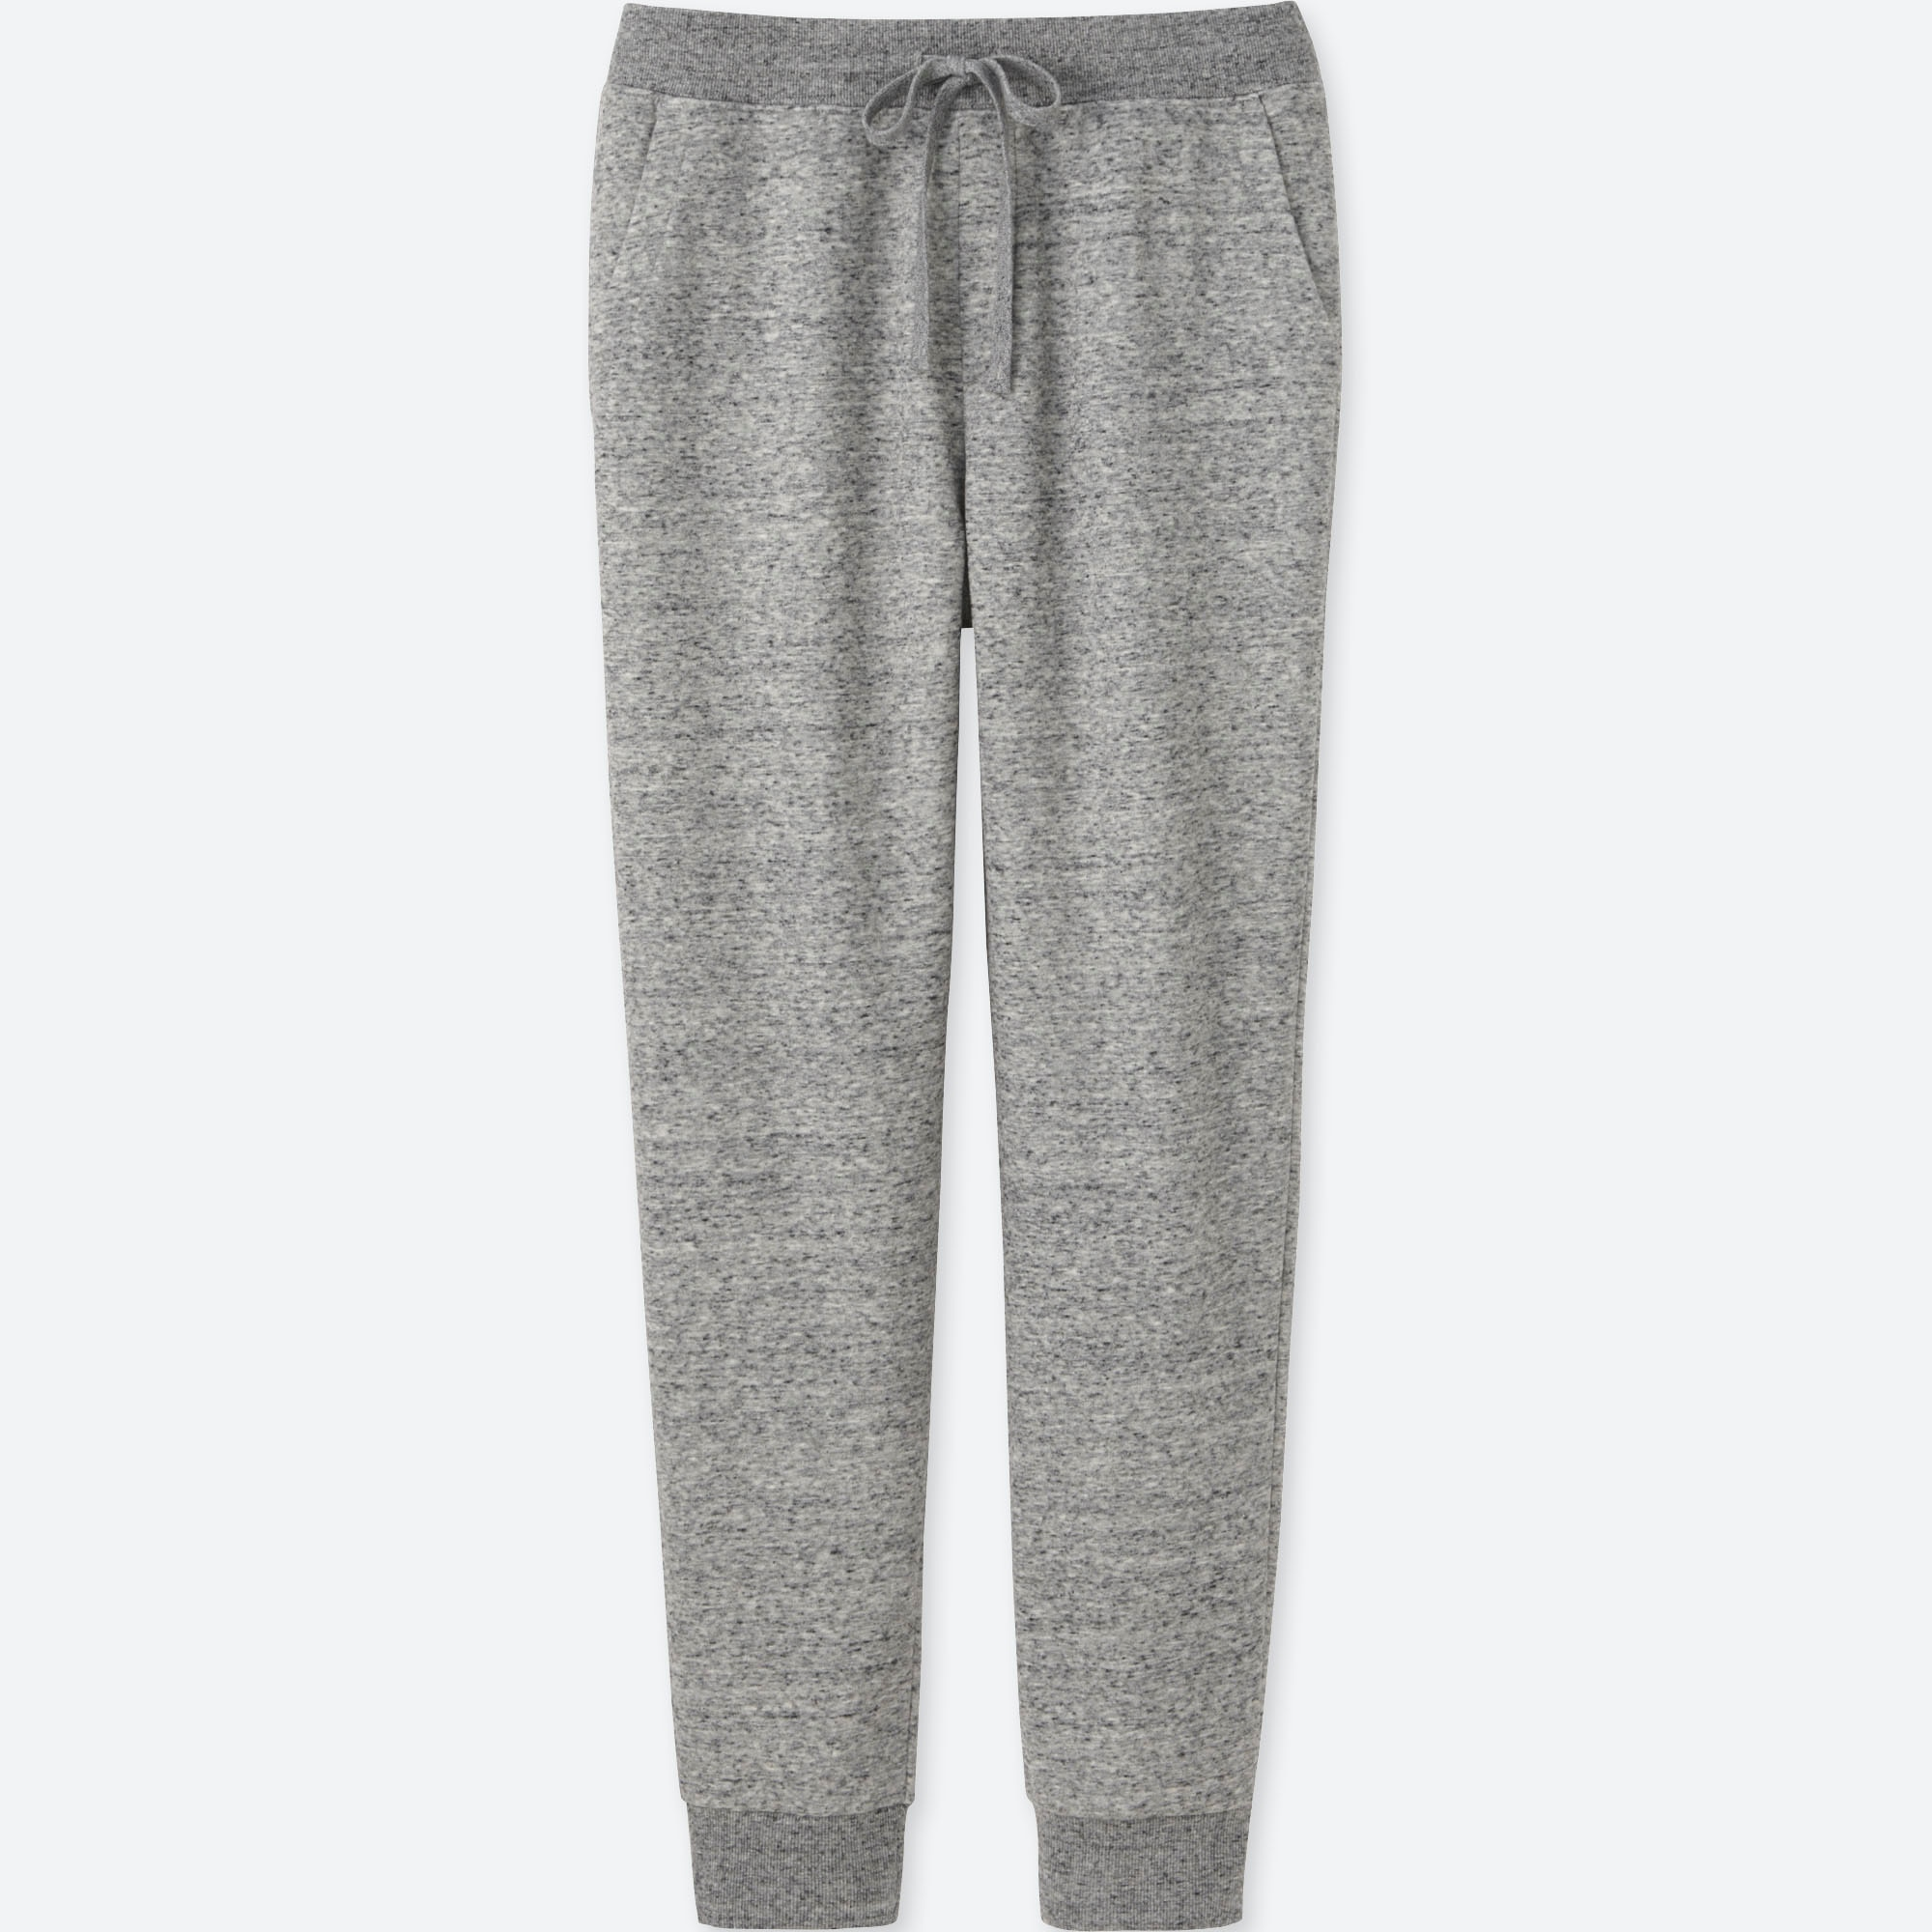 incredible prices best wholesaler purchase original WOMEN FLEECE-LINED SWEATPANTS